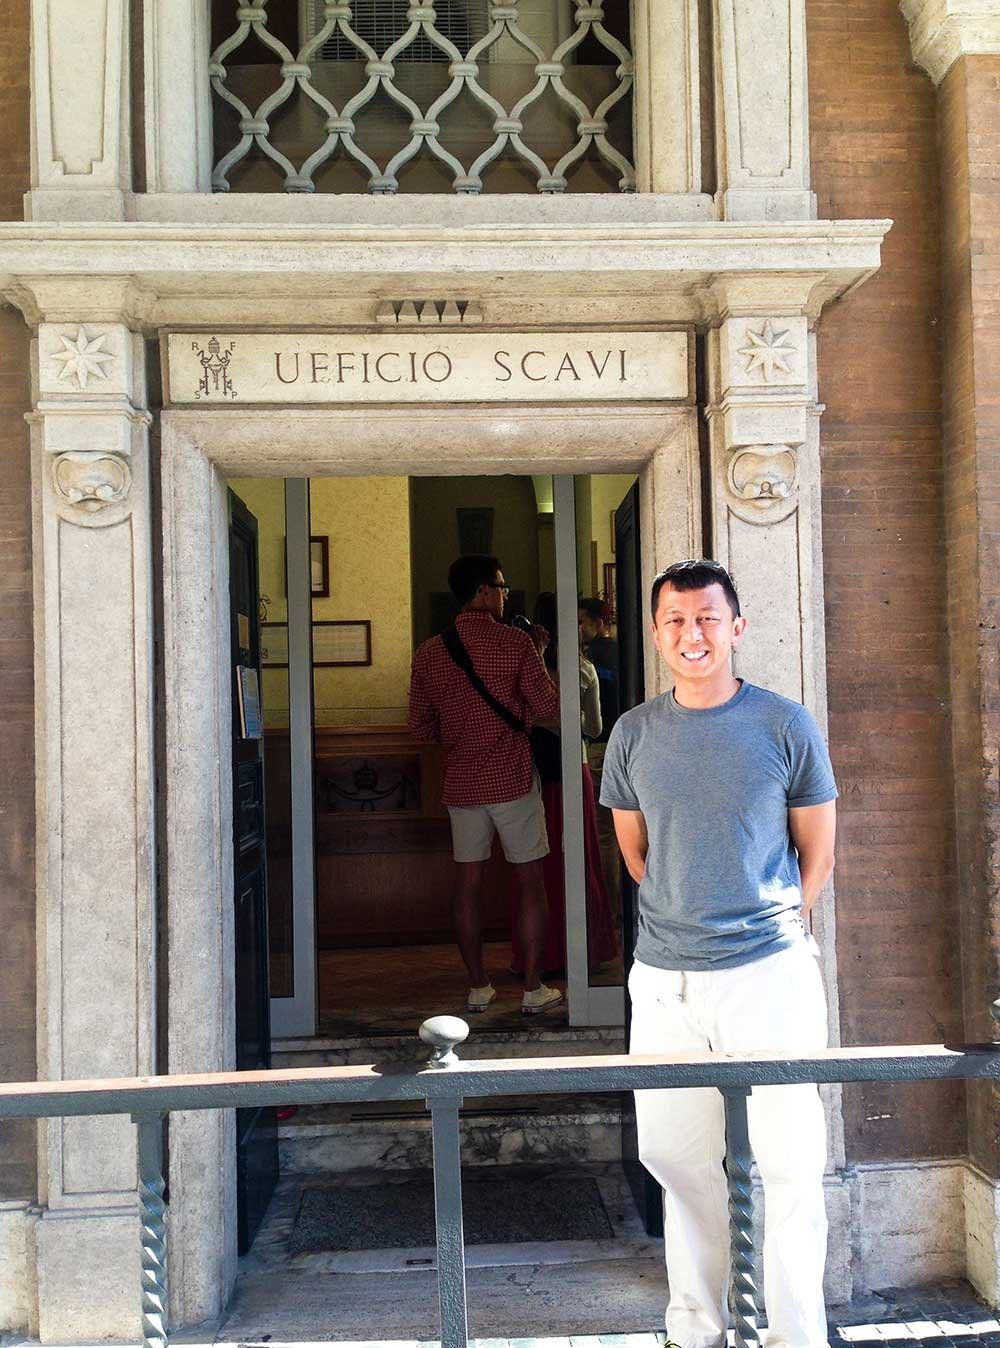 How To Book The Vatican City Scavi Tour And View St. Peter